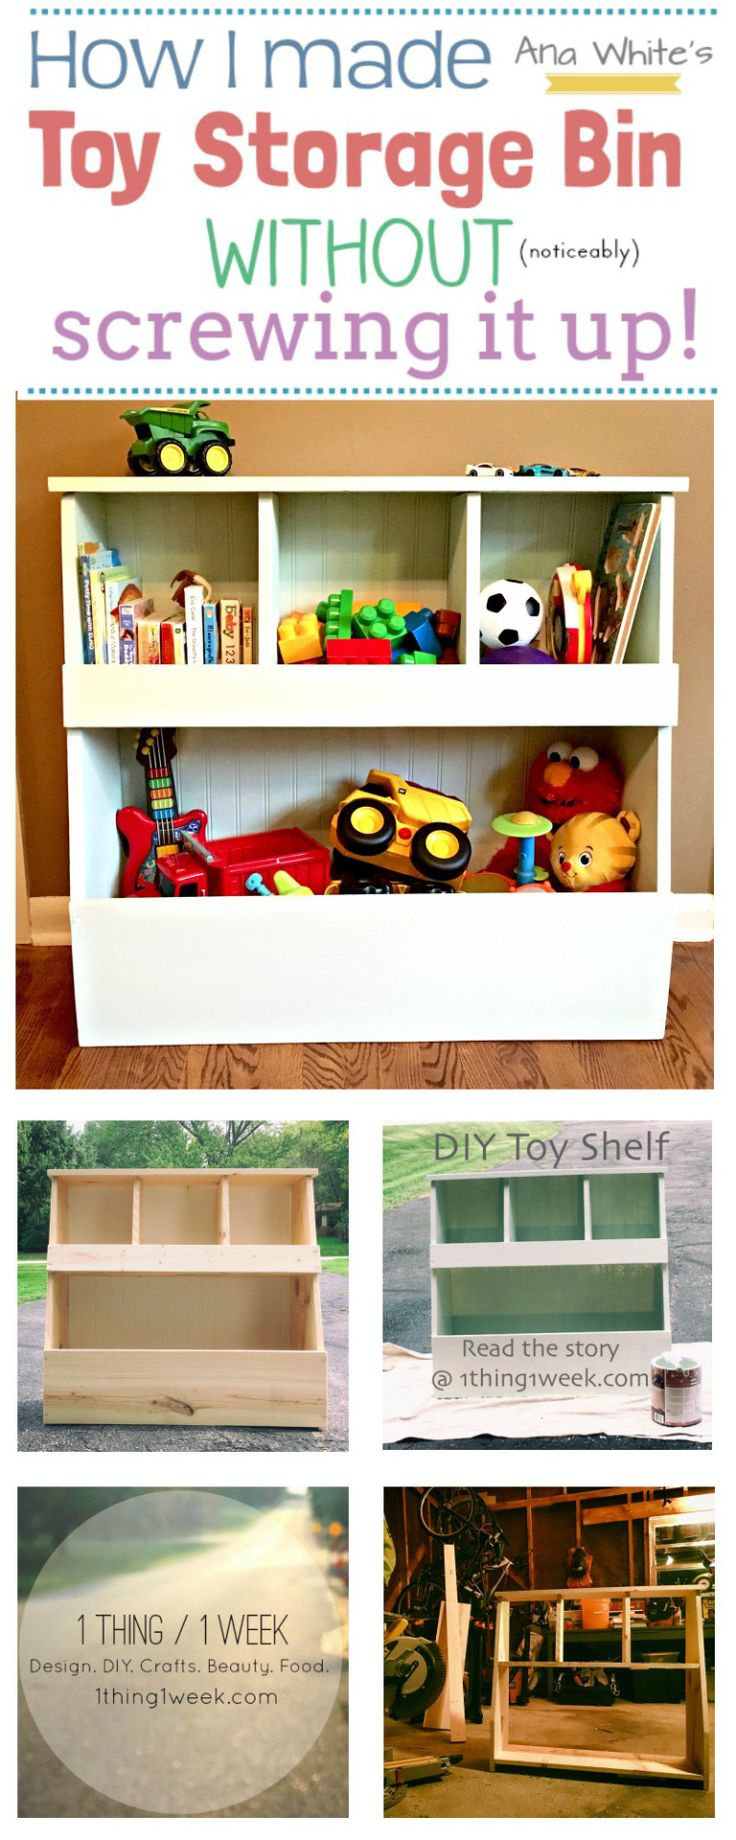 The Challenge: To Build A Toy Storage Bin For Lucasu0027s New Big Boy Room.